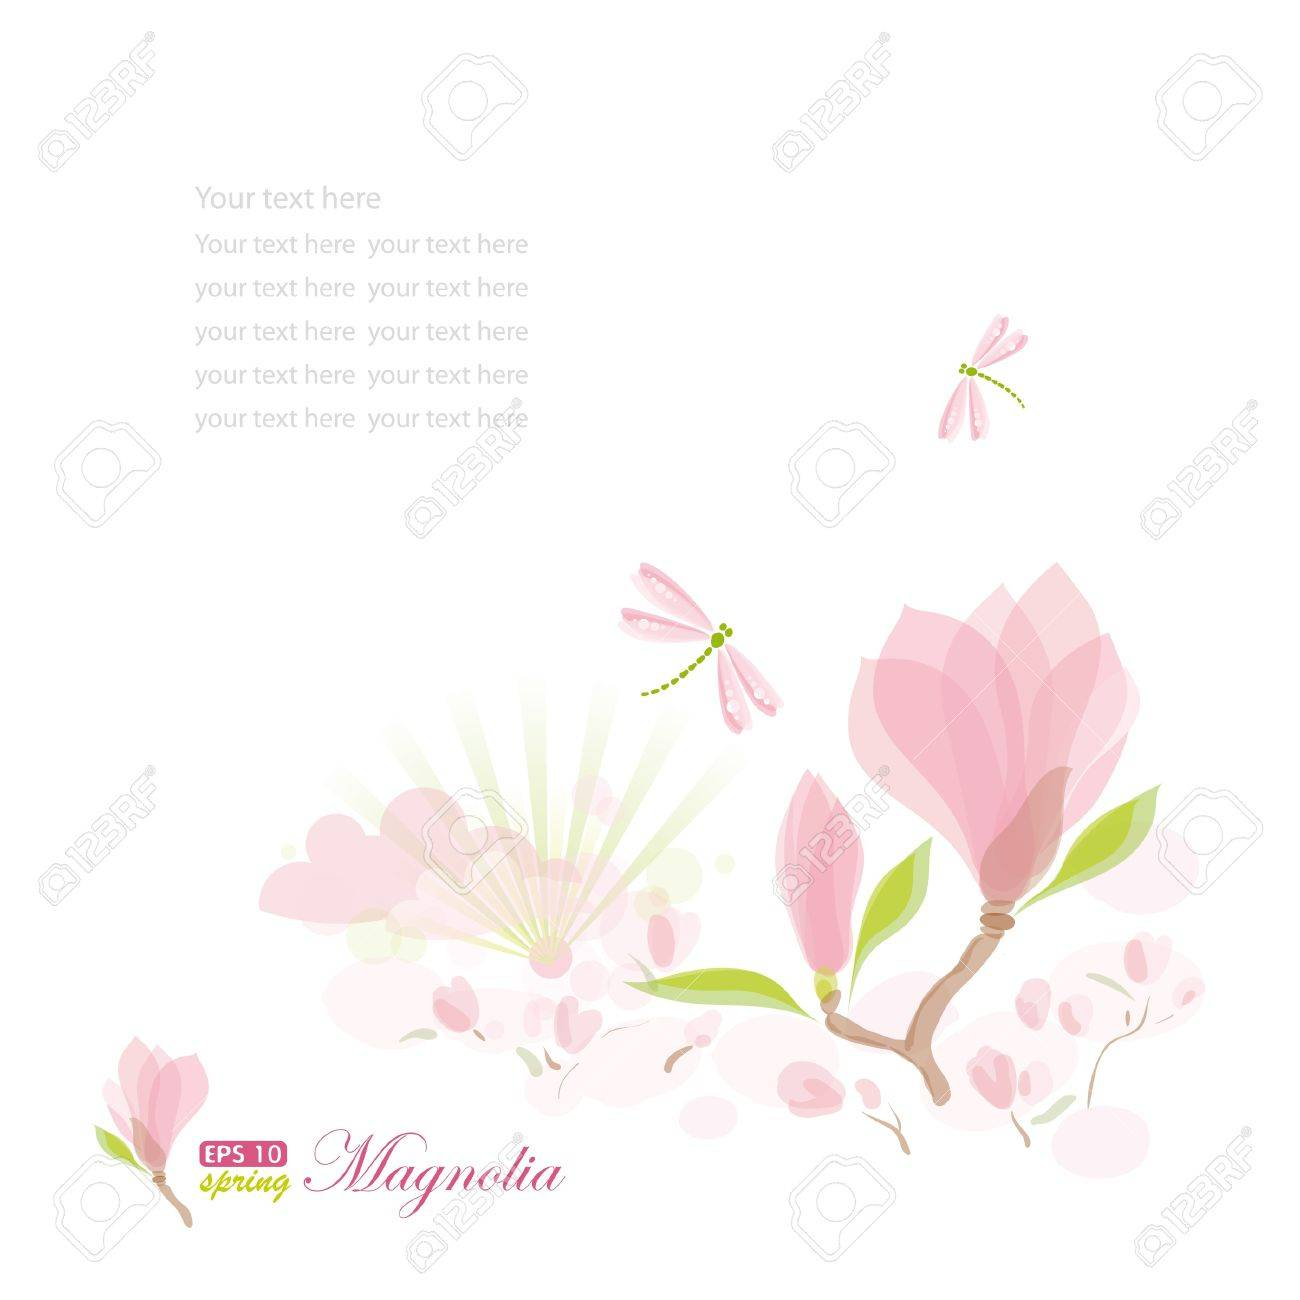 Magnolia branch and dragonfly, nature background, vector illustration, eps-10 Stock Vector - 9722079